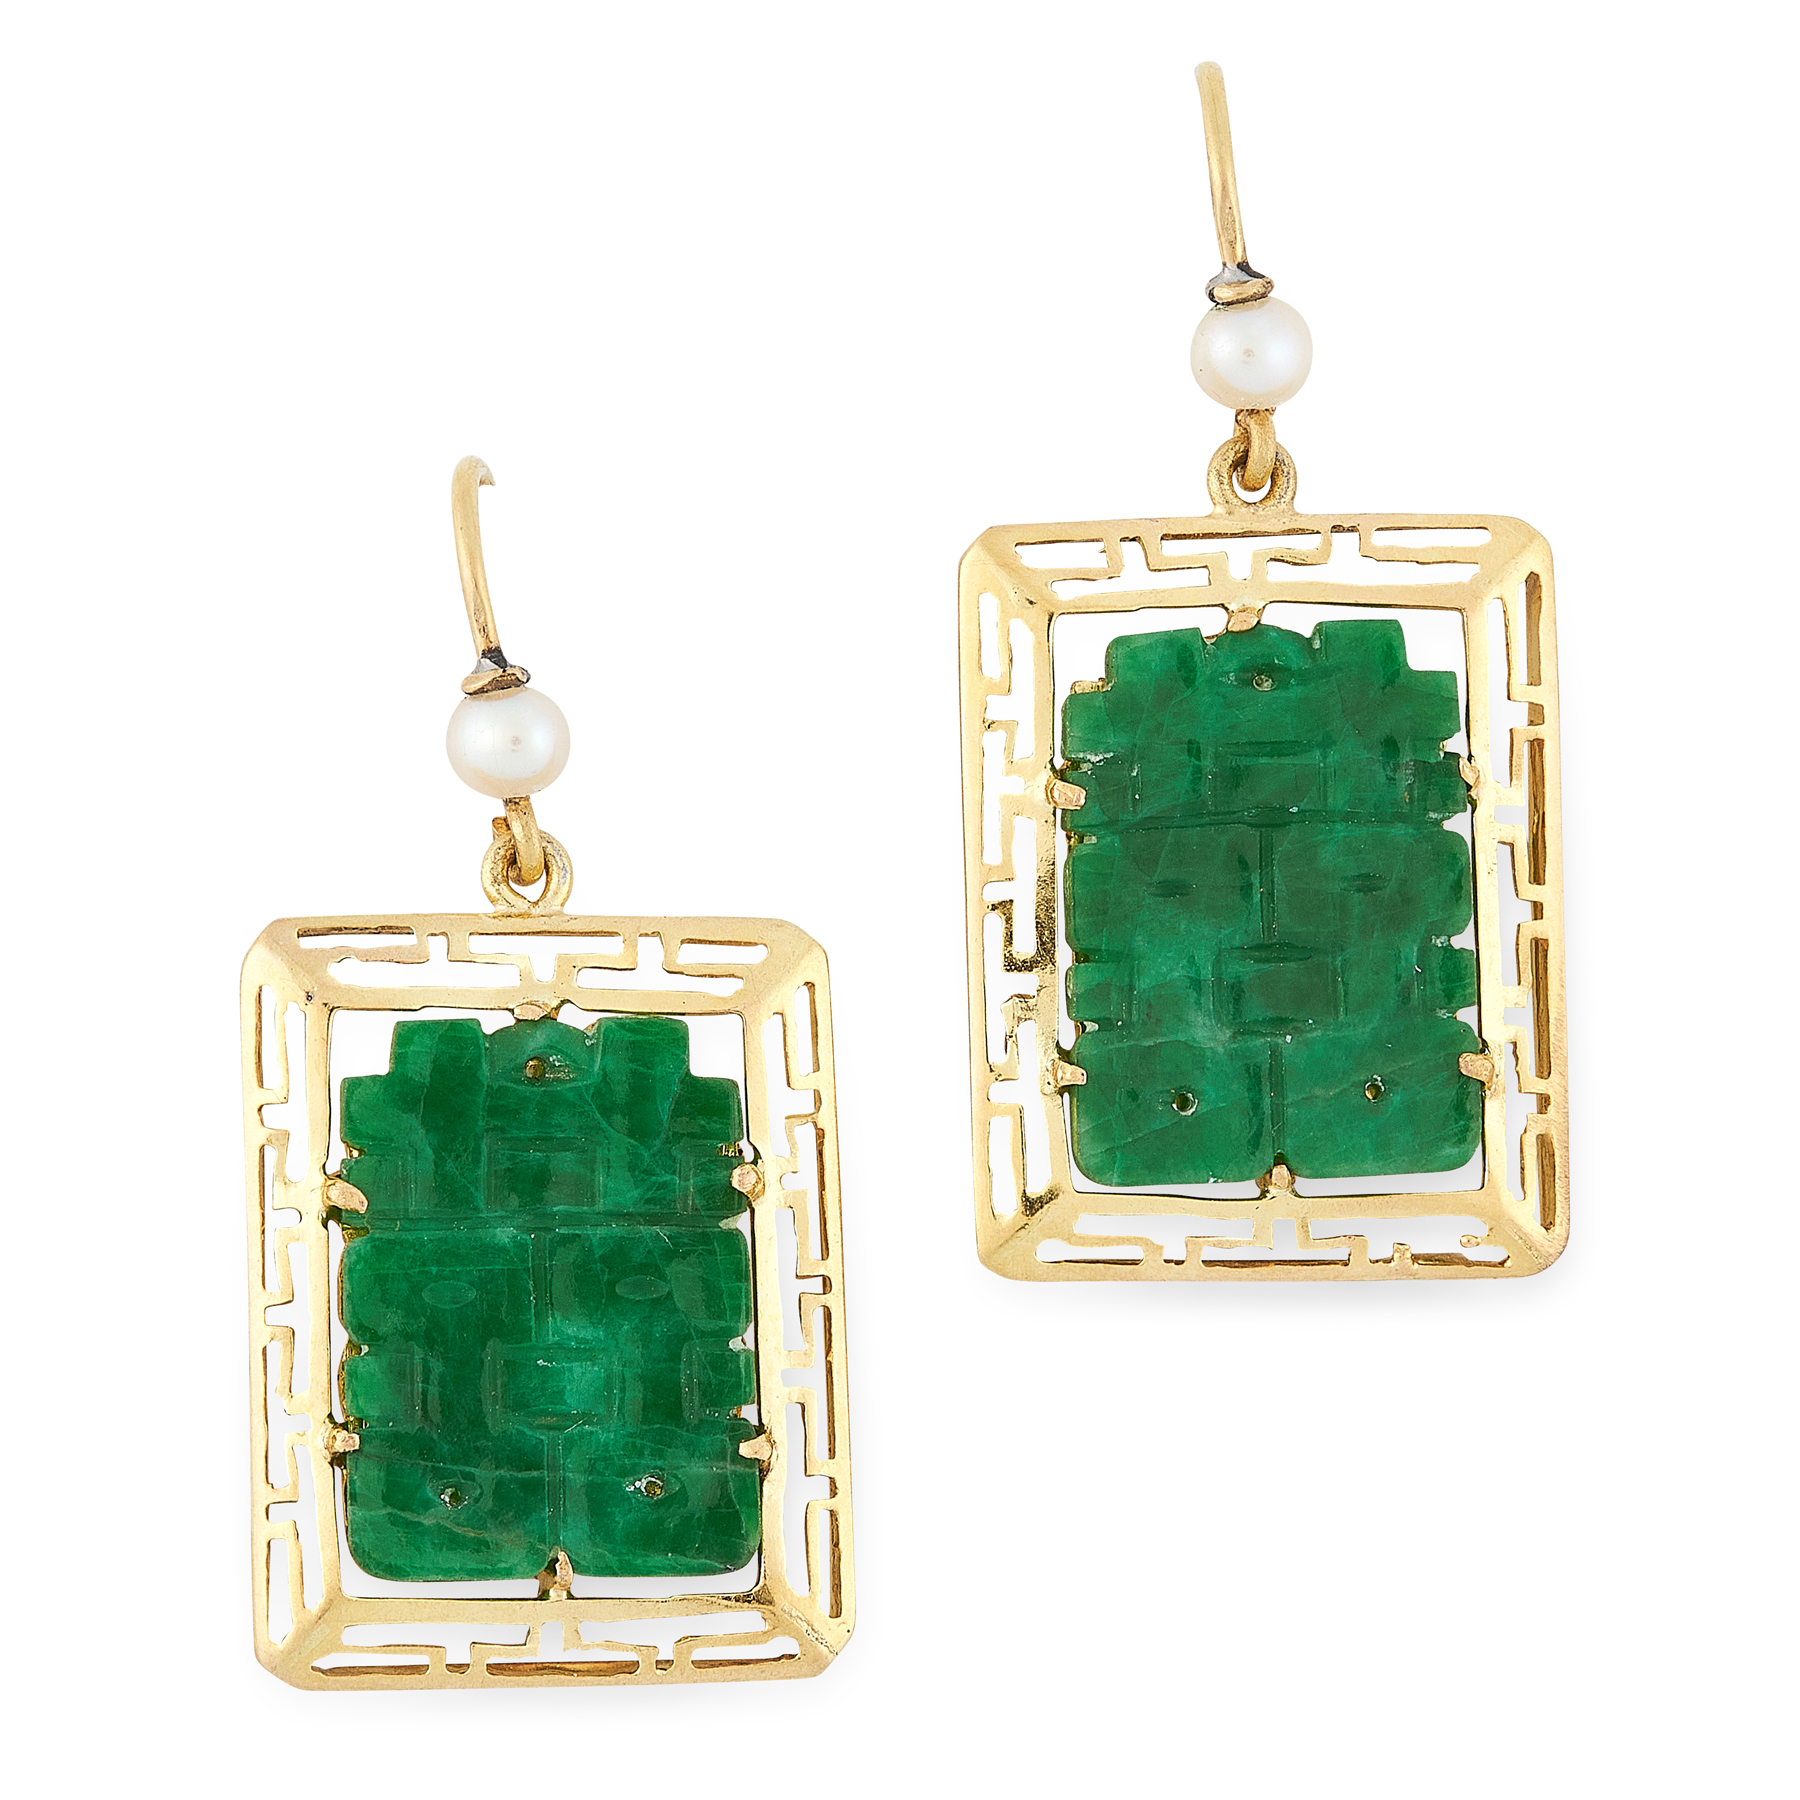 A PAIR OF CHINESE JADEITE JADE AND PEARL EARRINGS in 18ct yellow gold, each set with a piece of